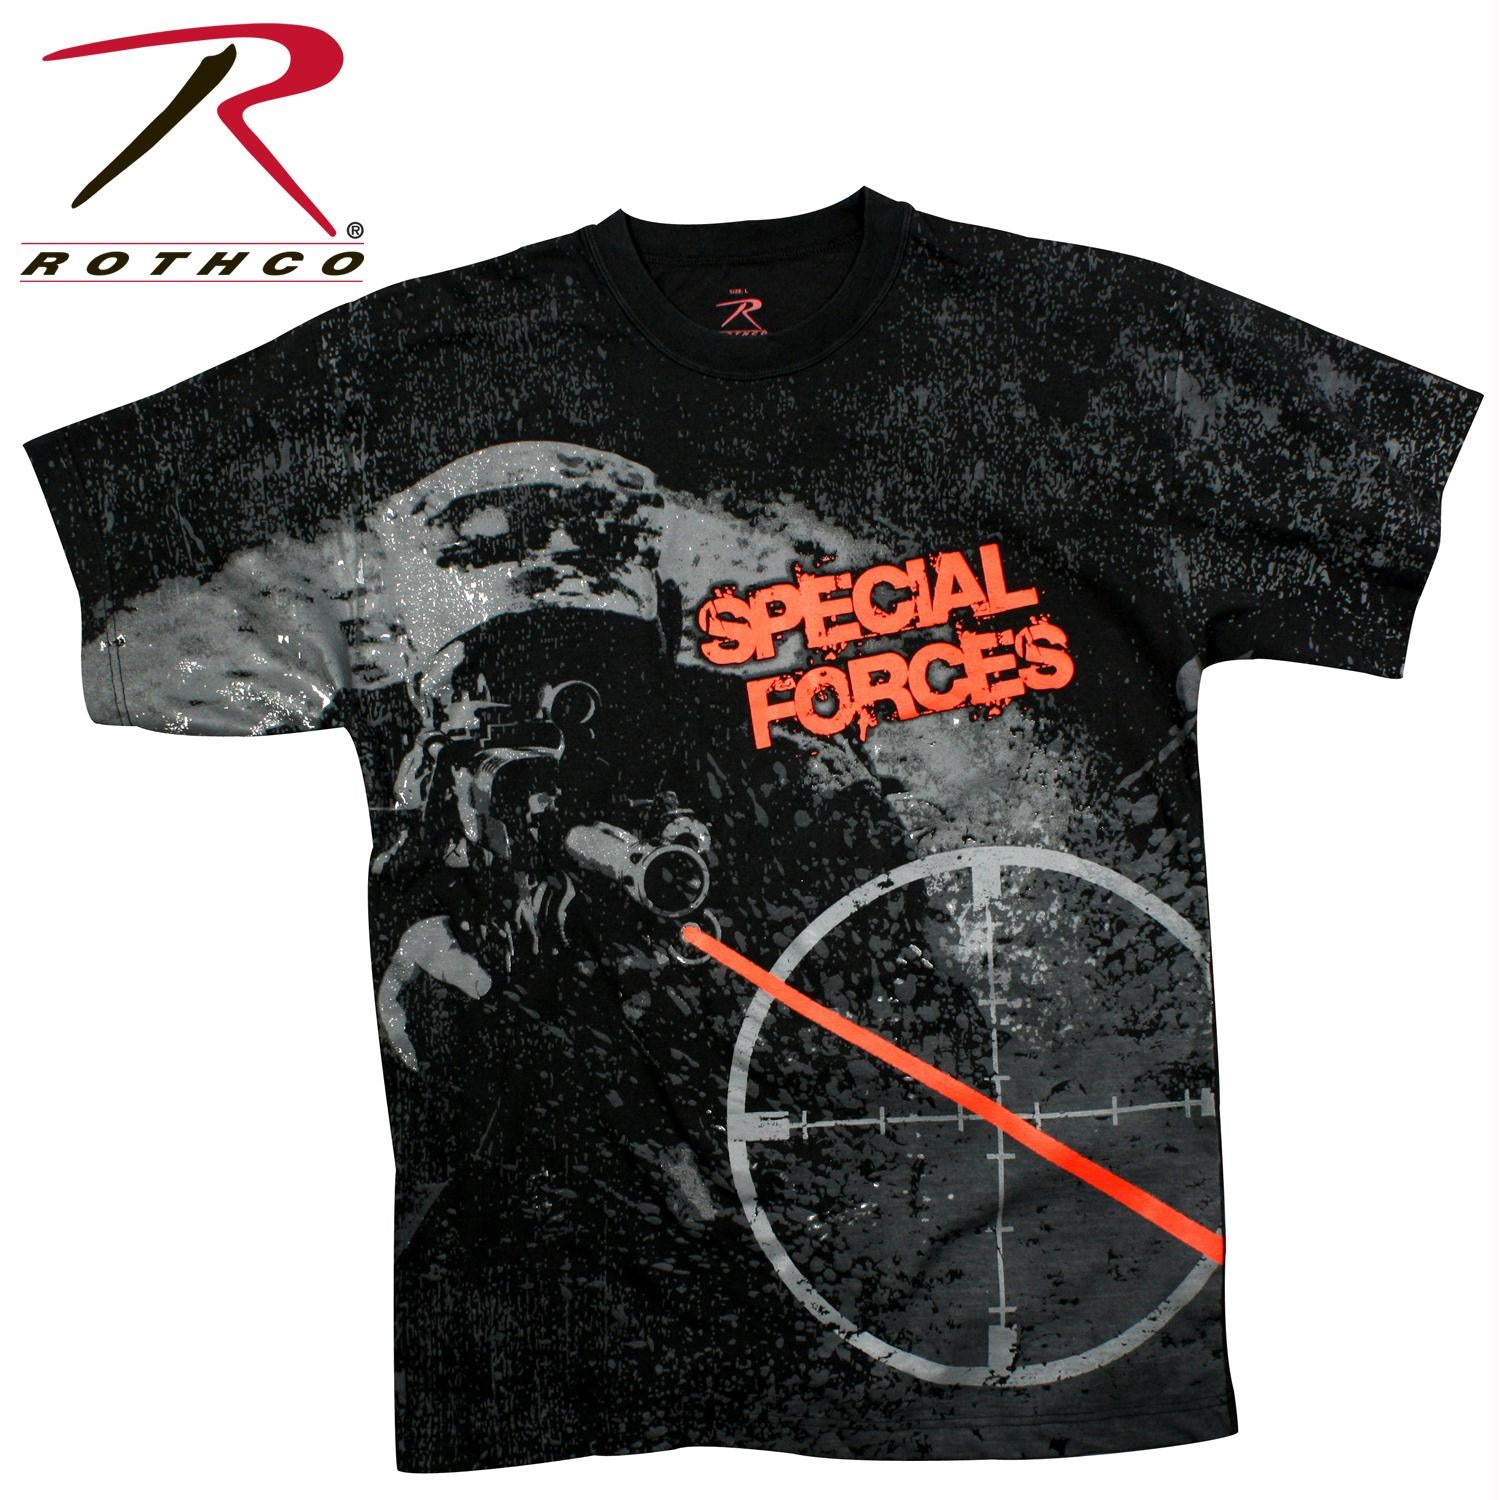 Rothco Vintage 'Special Forces' T-shirt - XL